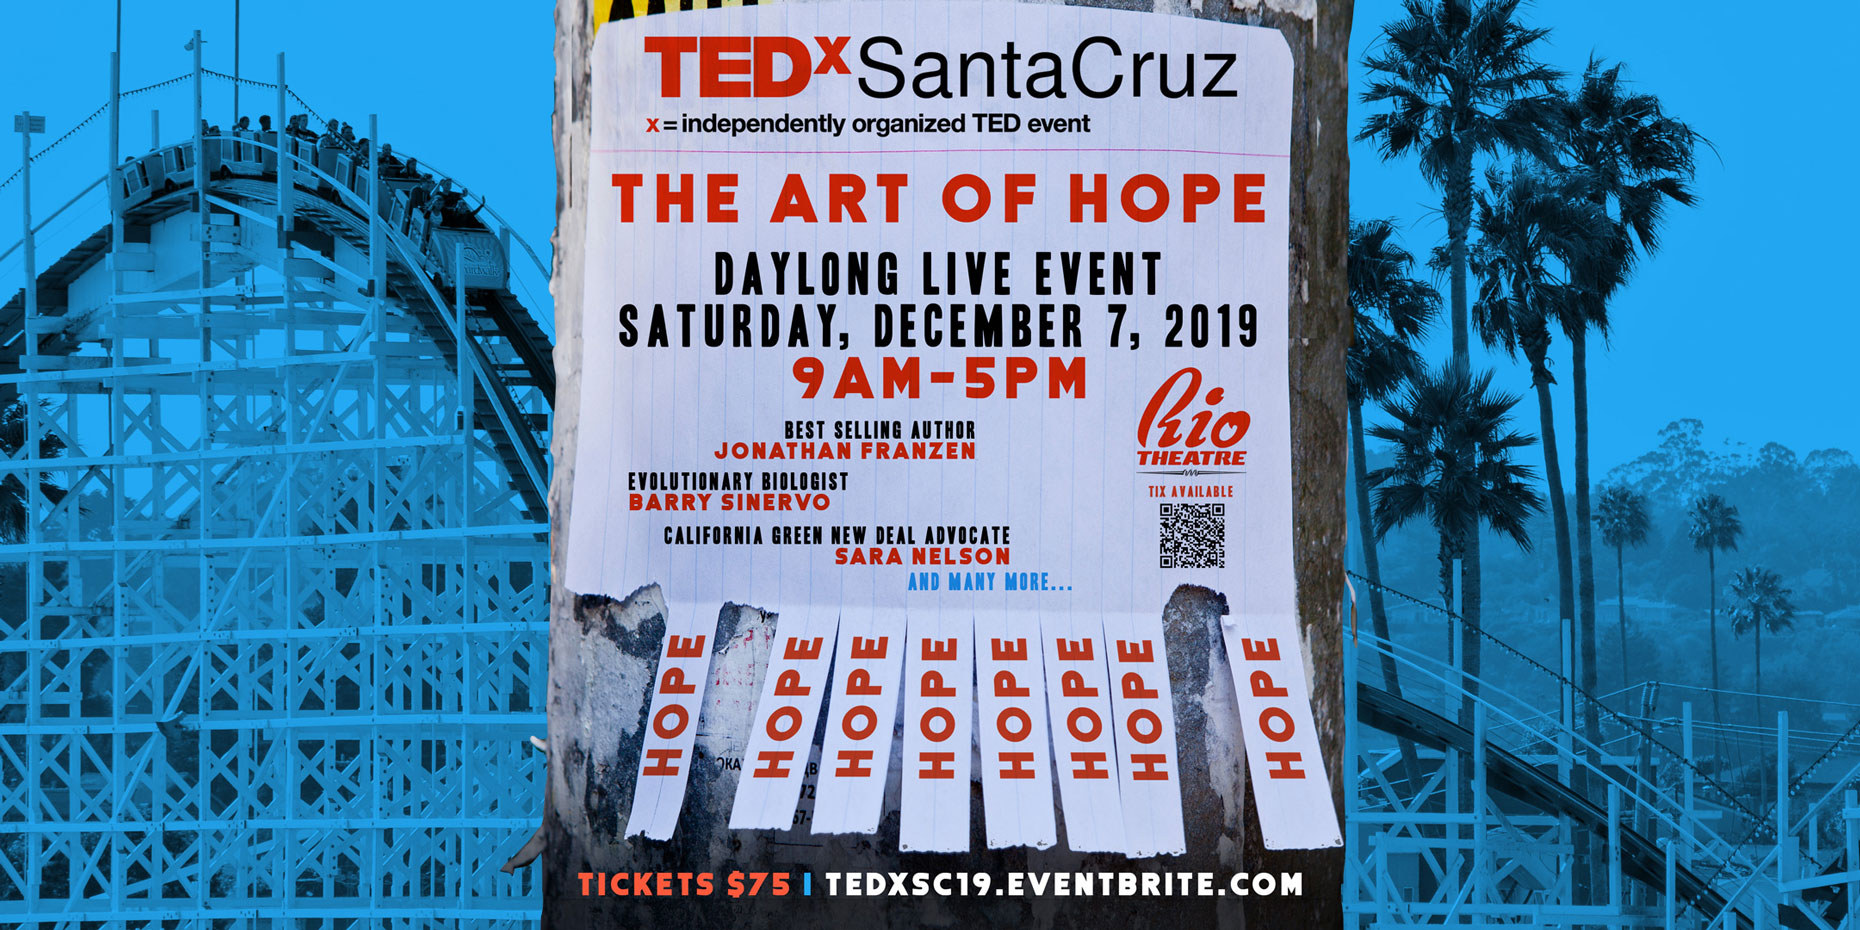 TEDxSantaCruz-2019-The-Art-of-Hope-at-The-Rio-Theatre-Dec-7